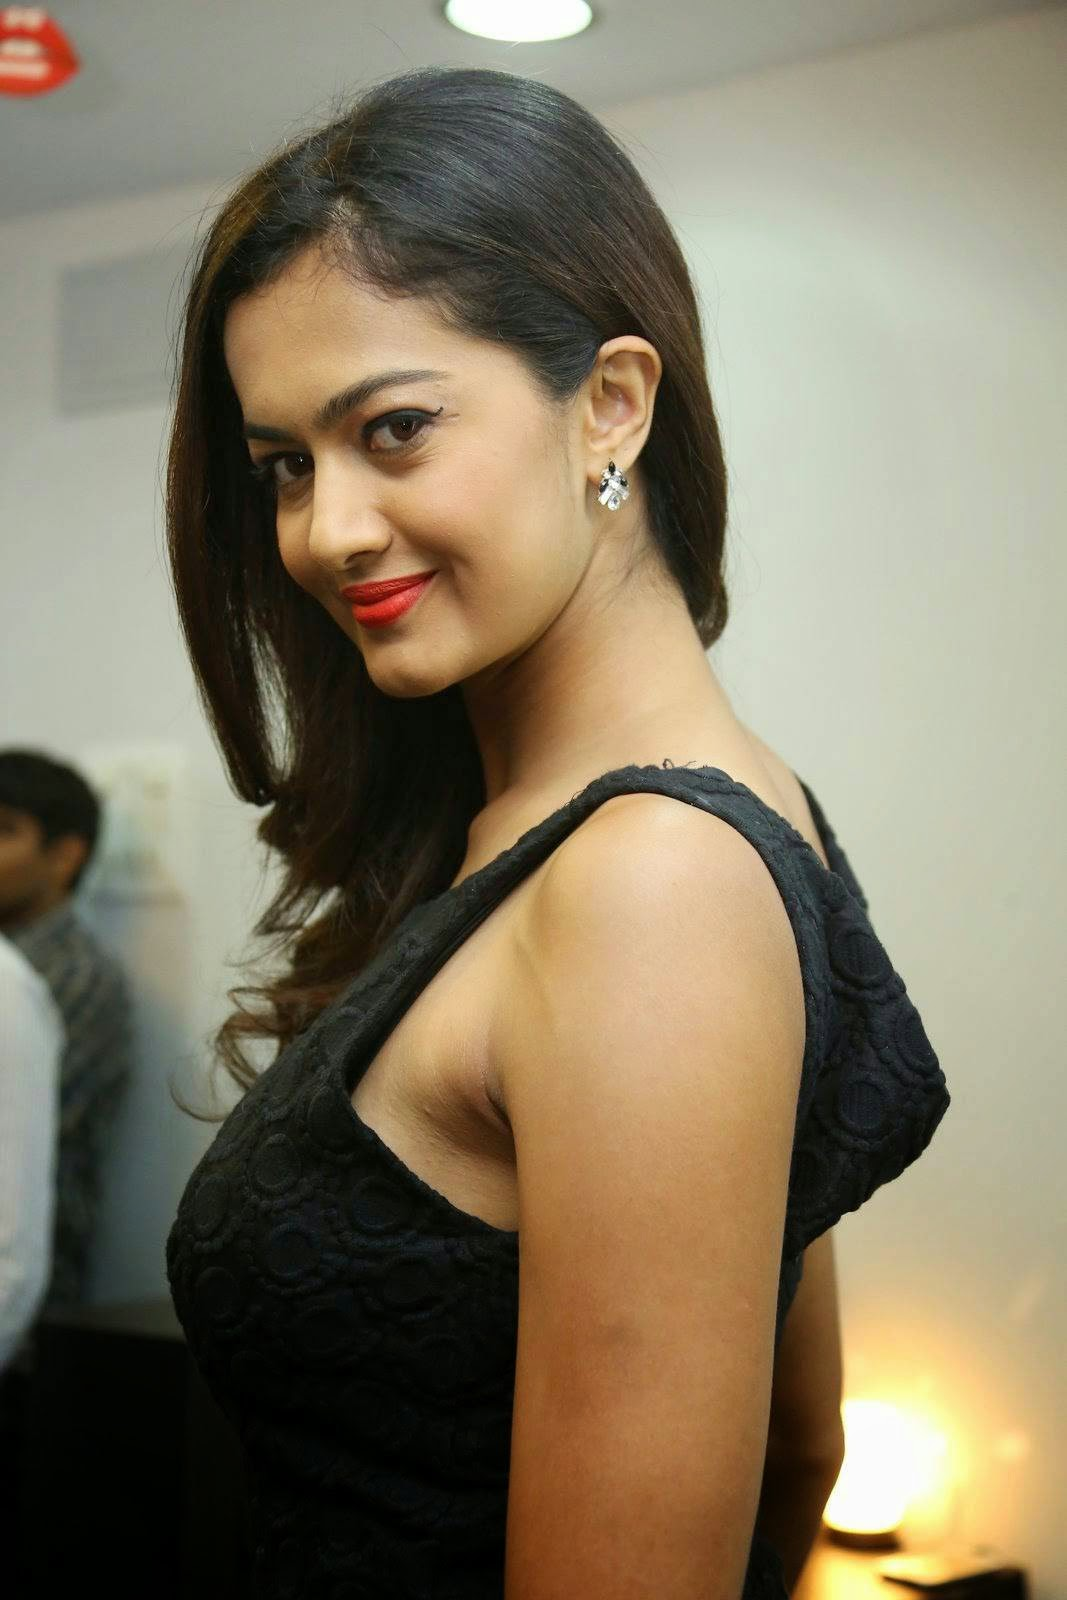 Actress Shubra Aiyappa Unseen Stills, Shubra Aiyappa Sexy Hot Figure images in Black Dress